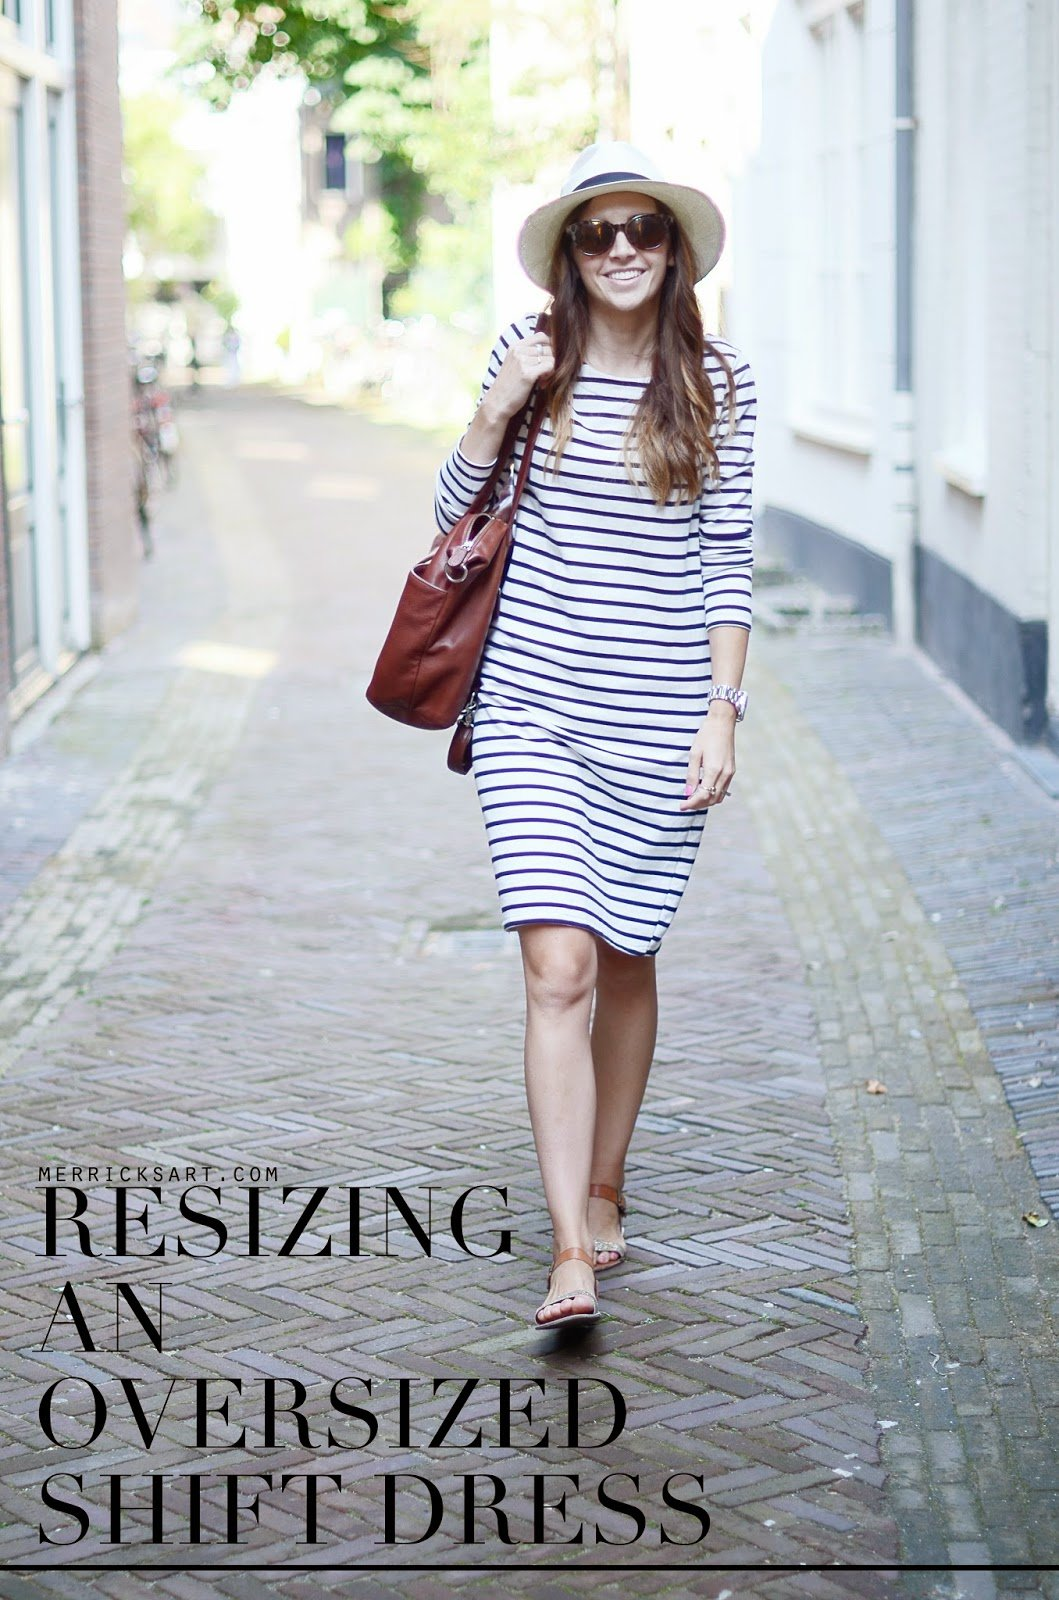 How To Resize An Oversized Dress Easily recommend